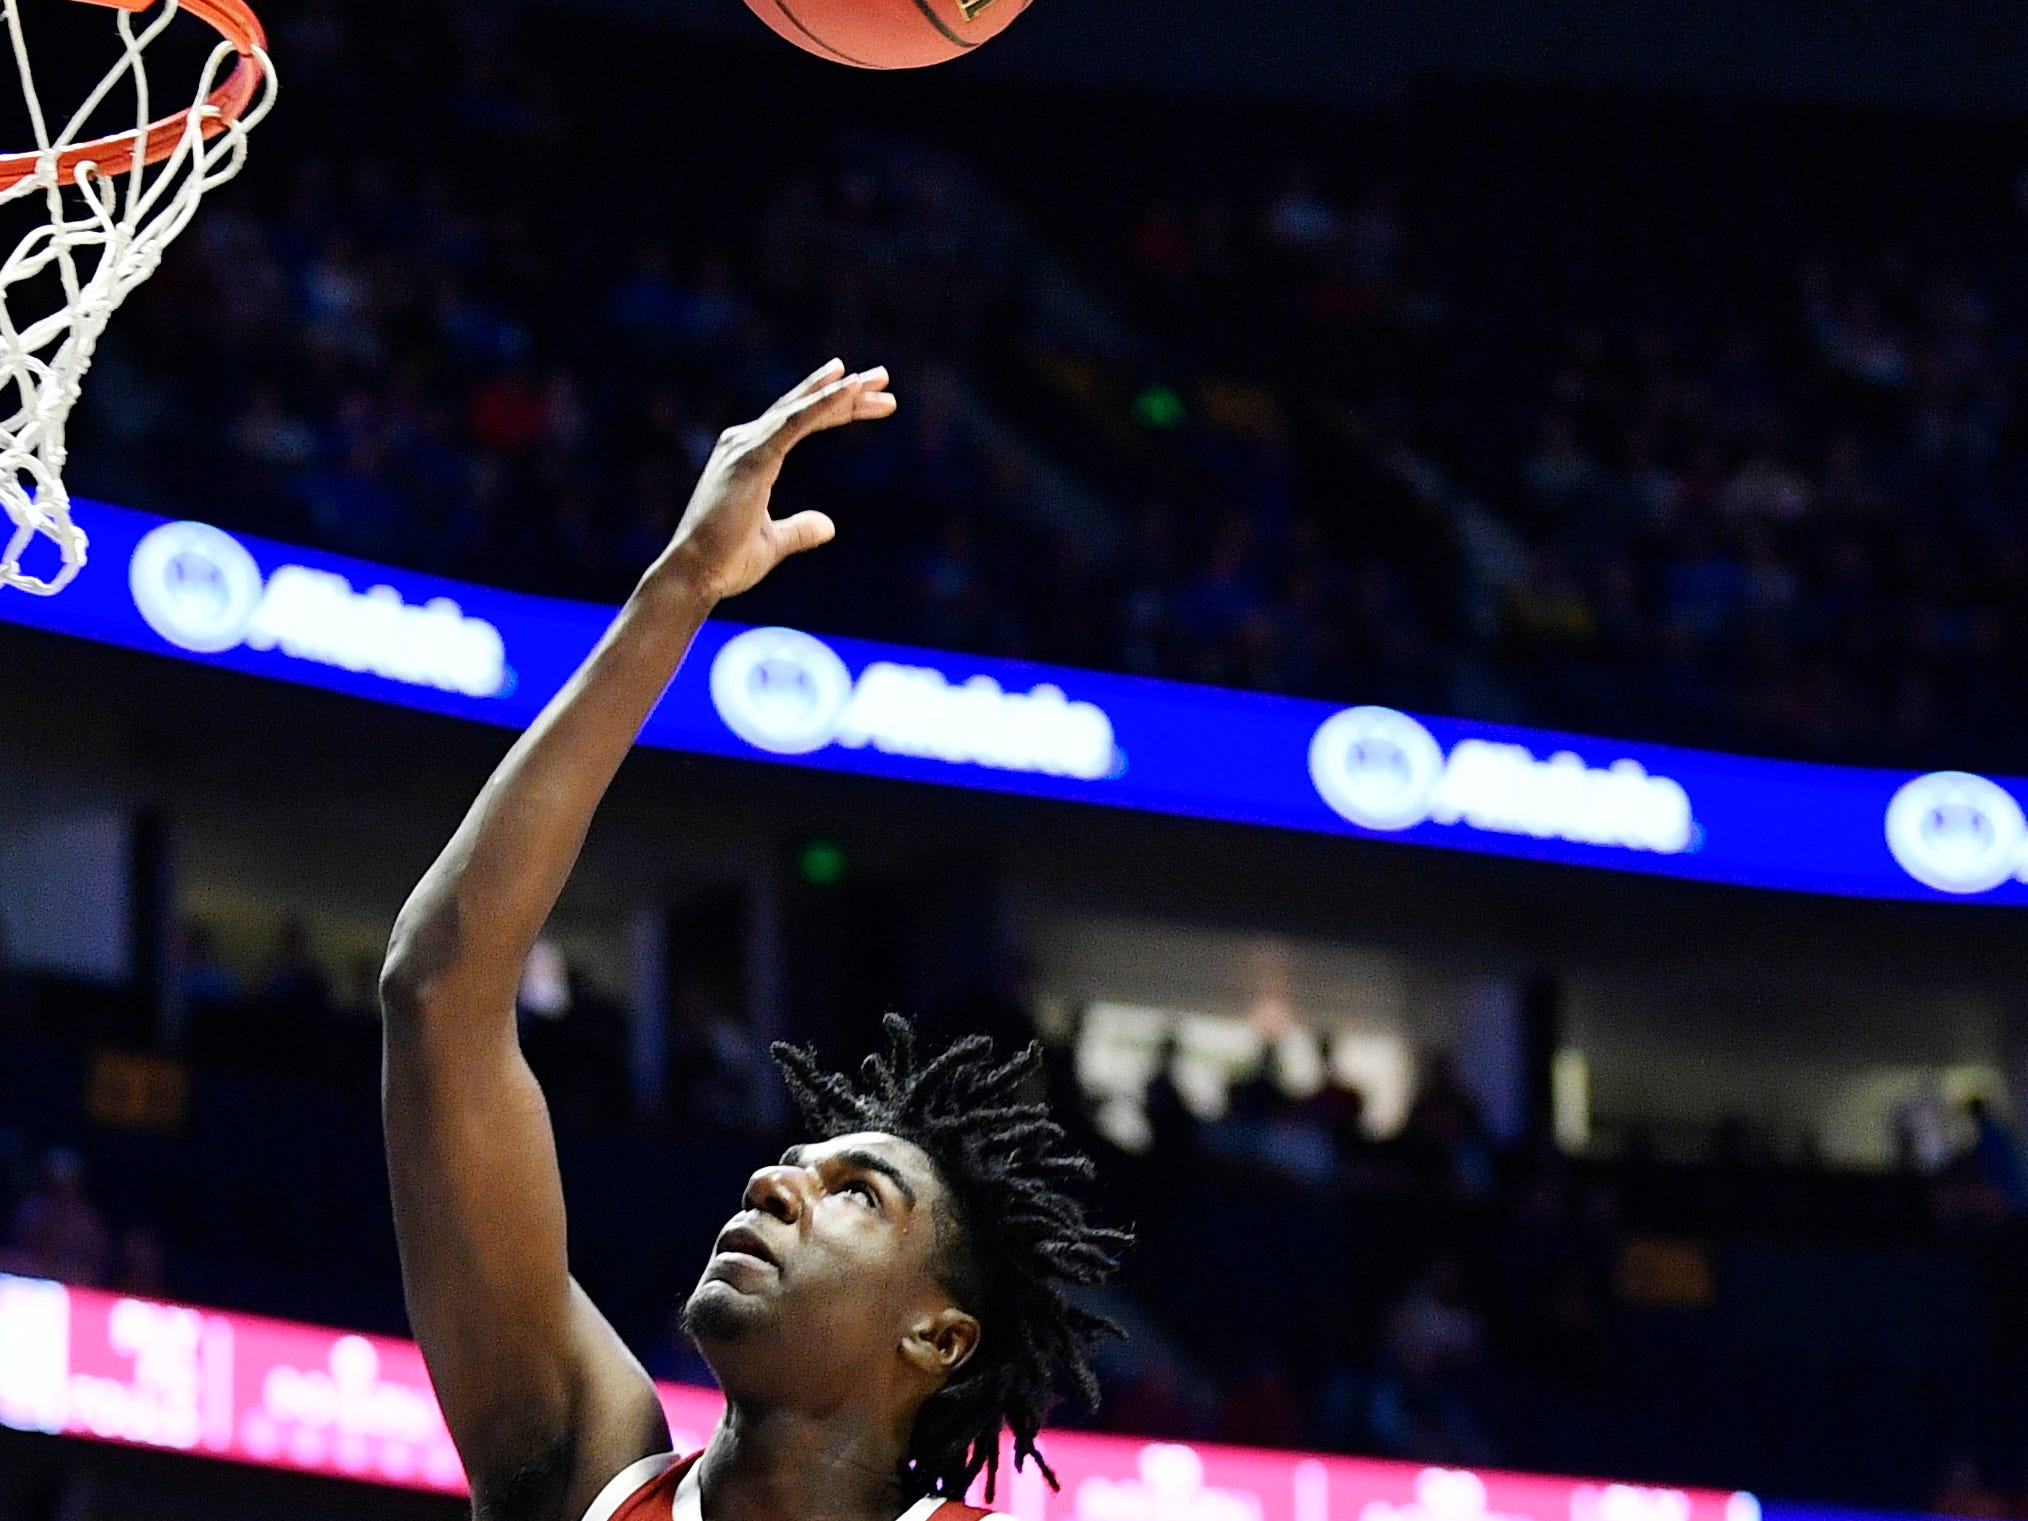 Alabama guard Kira Lewis Jr. (2) tosses up a shot during the first half of the SEC Men's Basketball Tournament game at Bridgestone Arena in Nashville, Tenn., Thursday, March 14, 2019.